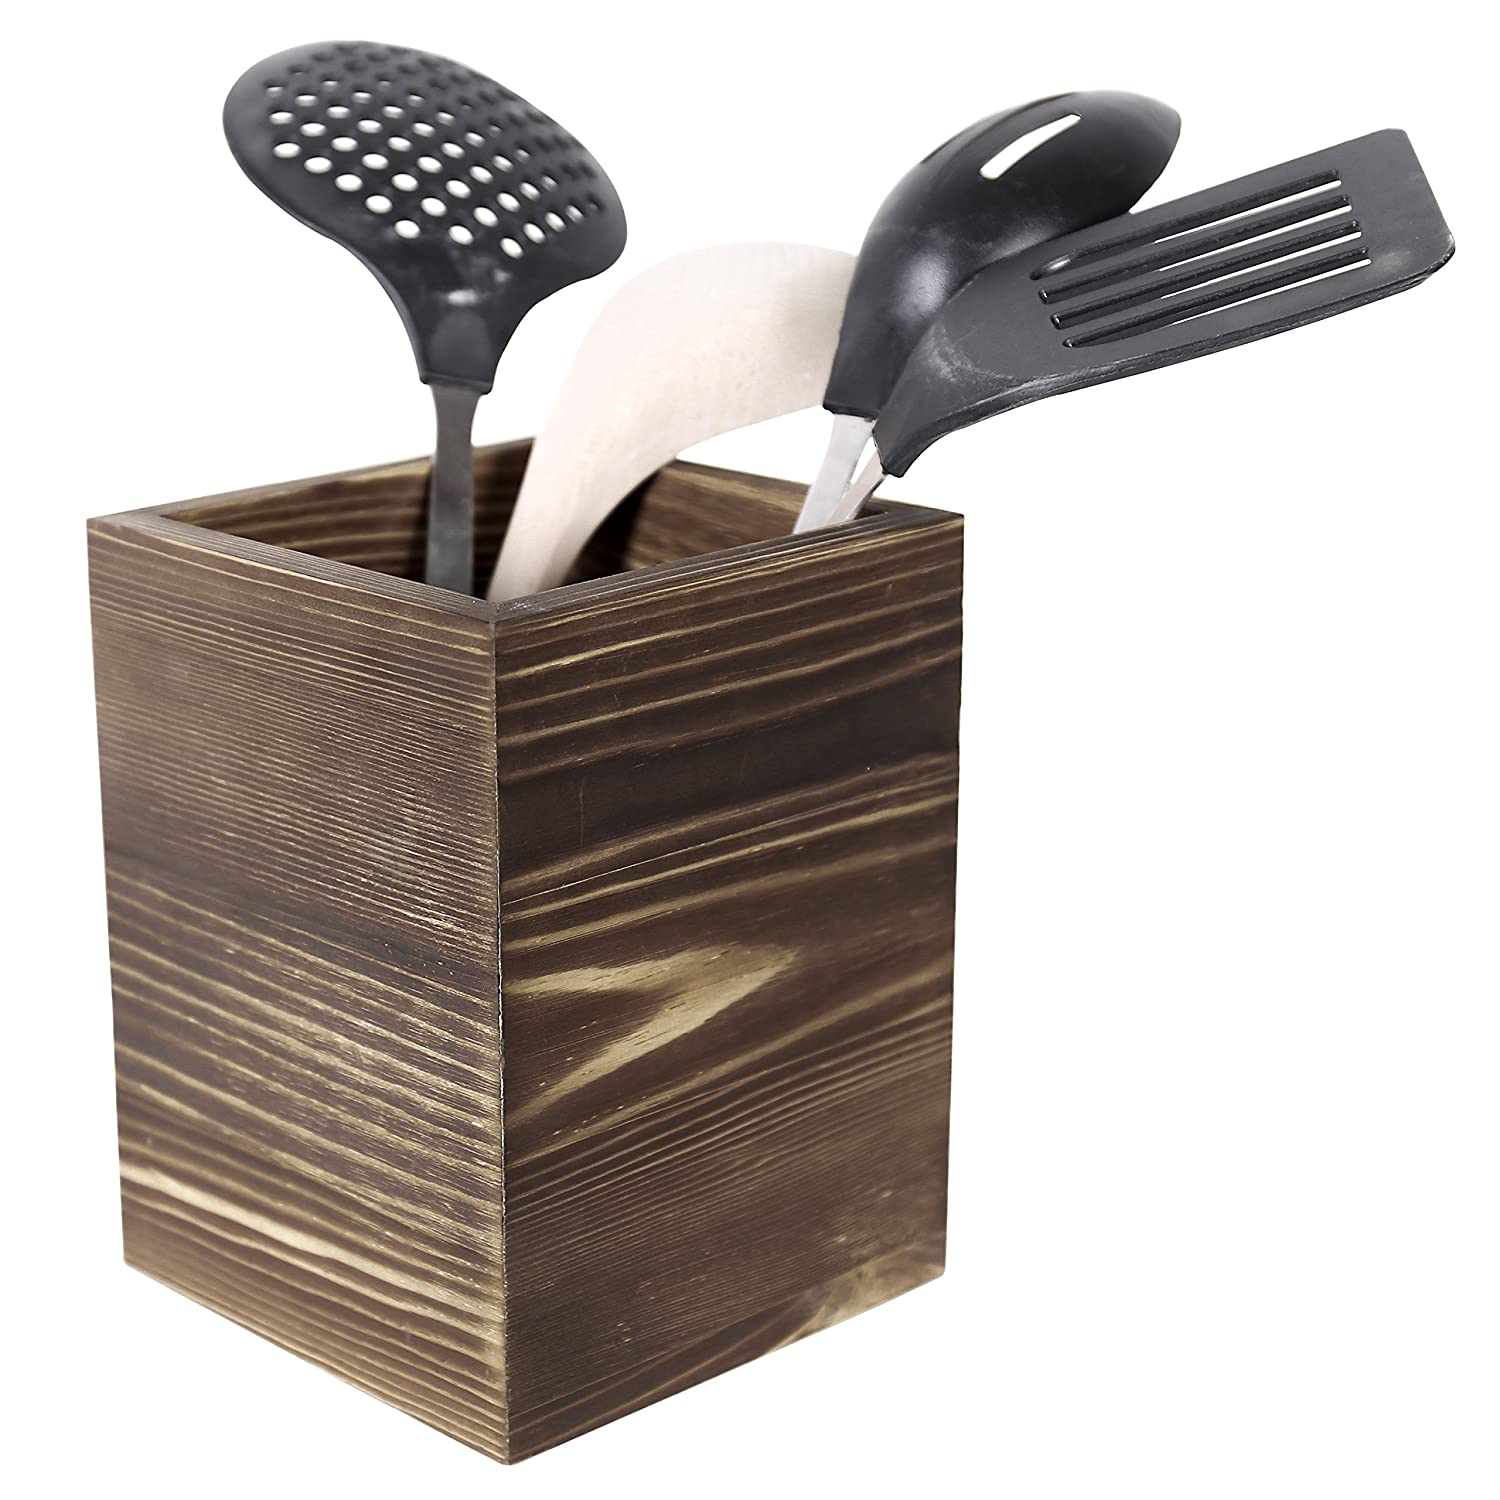 Rustic Torched Wood Kitchen Utensil Holder, Counter Top Cooking Tools Cup, Brown MyGift SPOMHNK3342